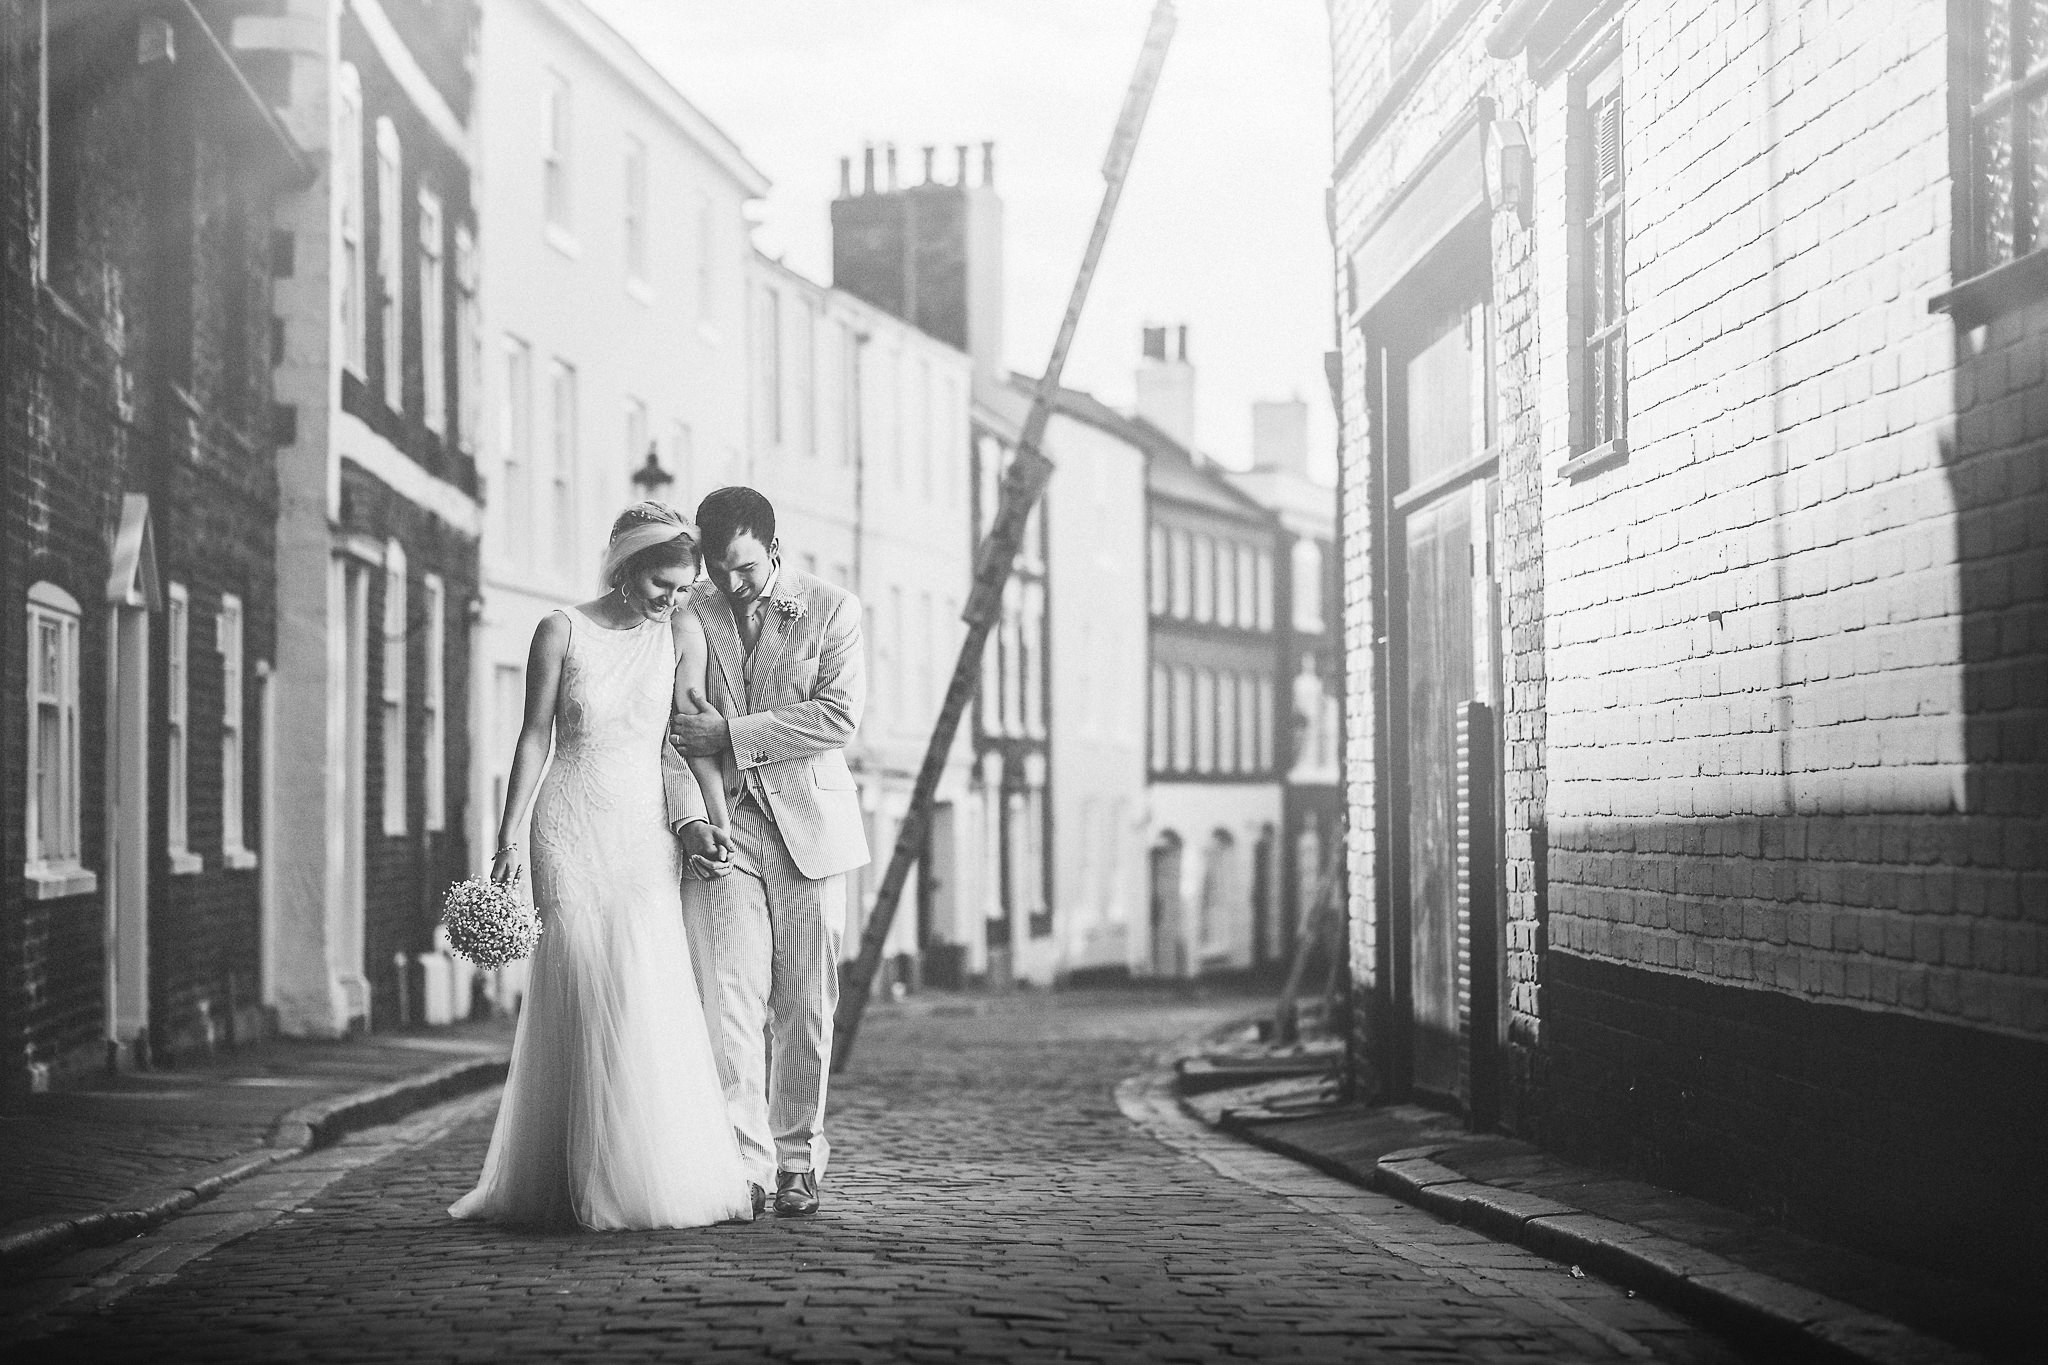 paul-marbrook-best-wedding-photographer-north-wales-031131